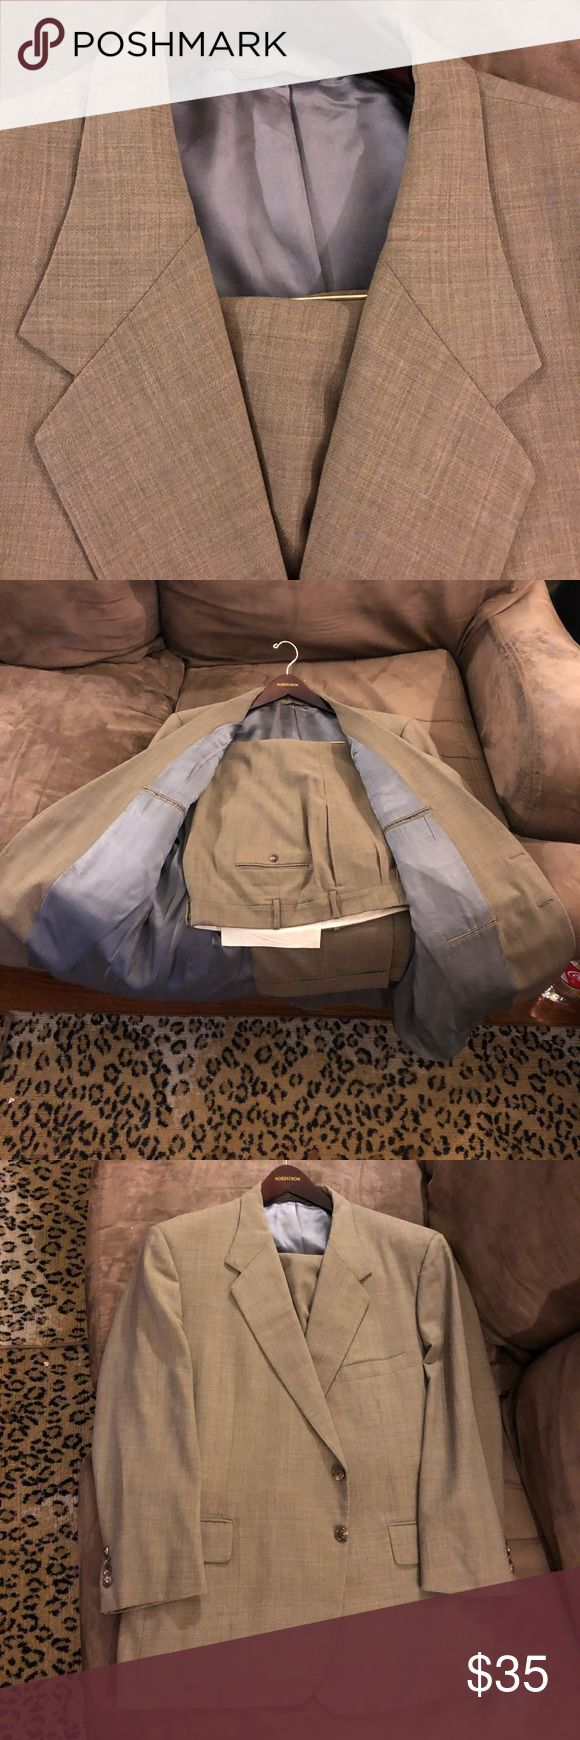 Tom James Light Olive Green Suit 44S Short Tom James Solid Light Olive Green Suit size 44S Short, 2 Button and single vented! Pants are size 39x27, Pleated and cuffed! Great condition! Please make reasonable offers and bundle! Ask questions! :) Tom James Suits & Blazers Suits